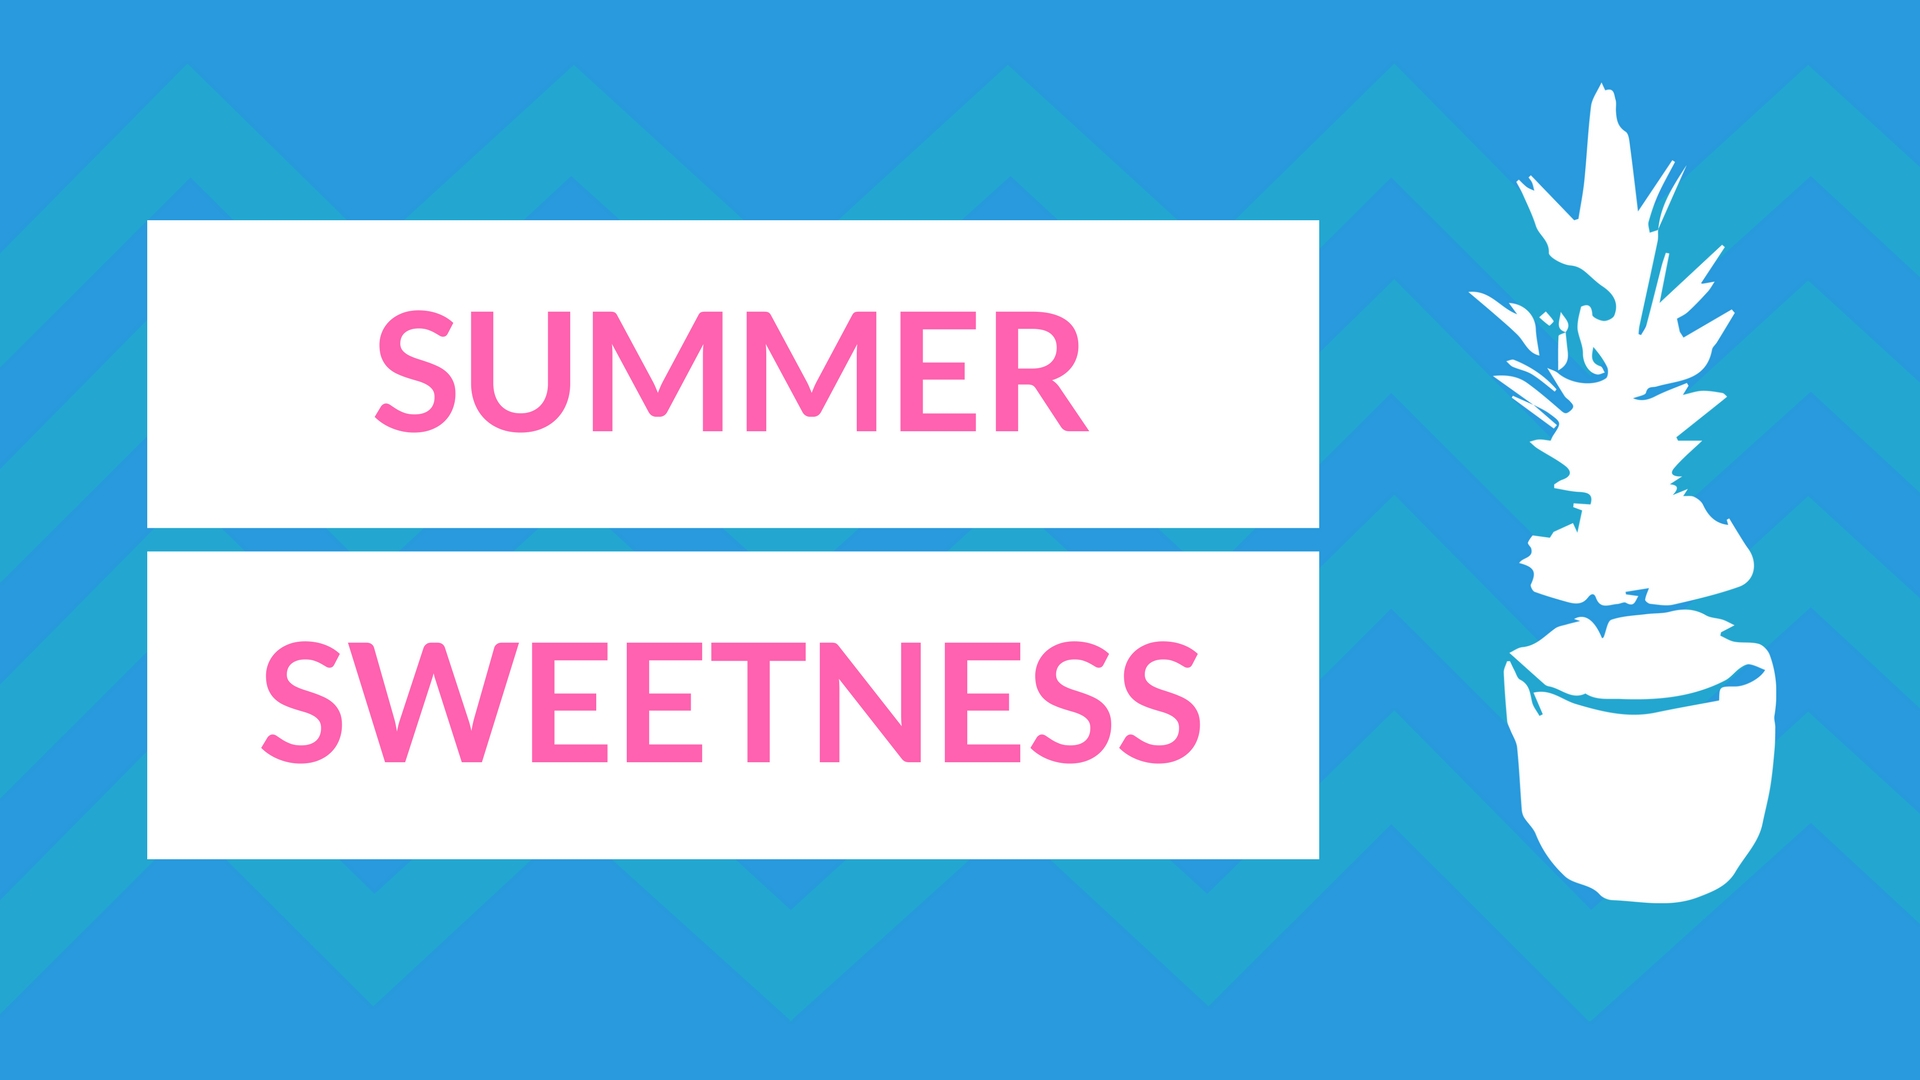 Summer Sweetness Wallpaper